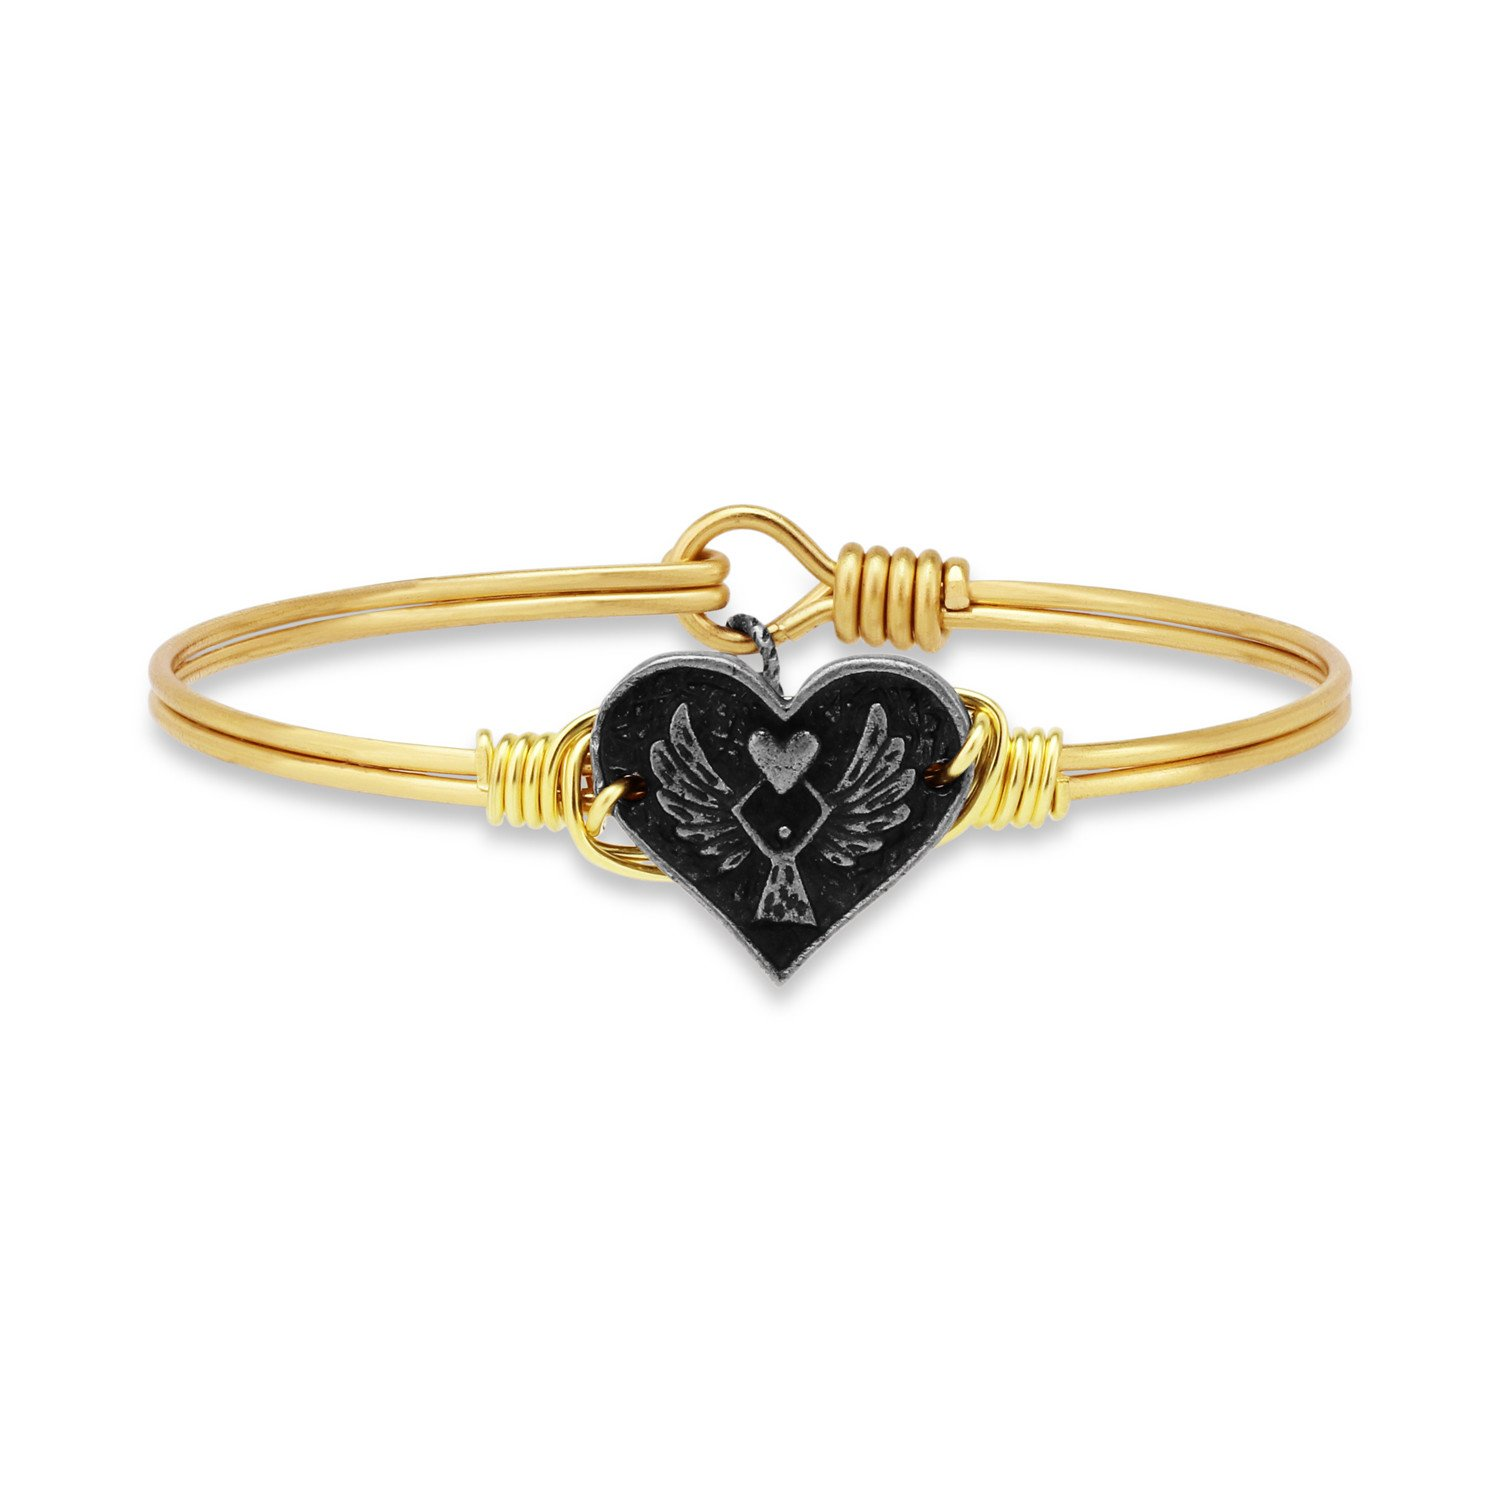 Angel Heart Bangle Bracelet